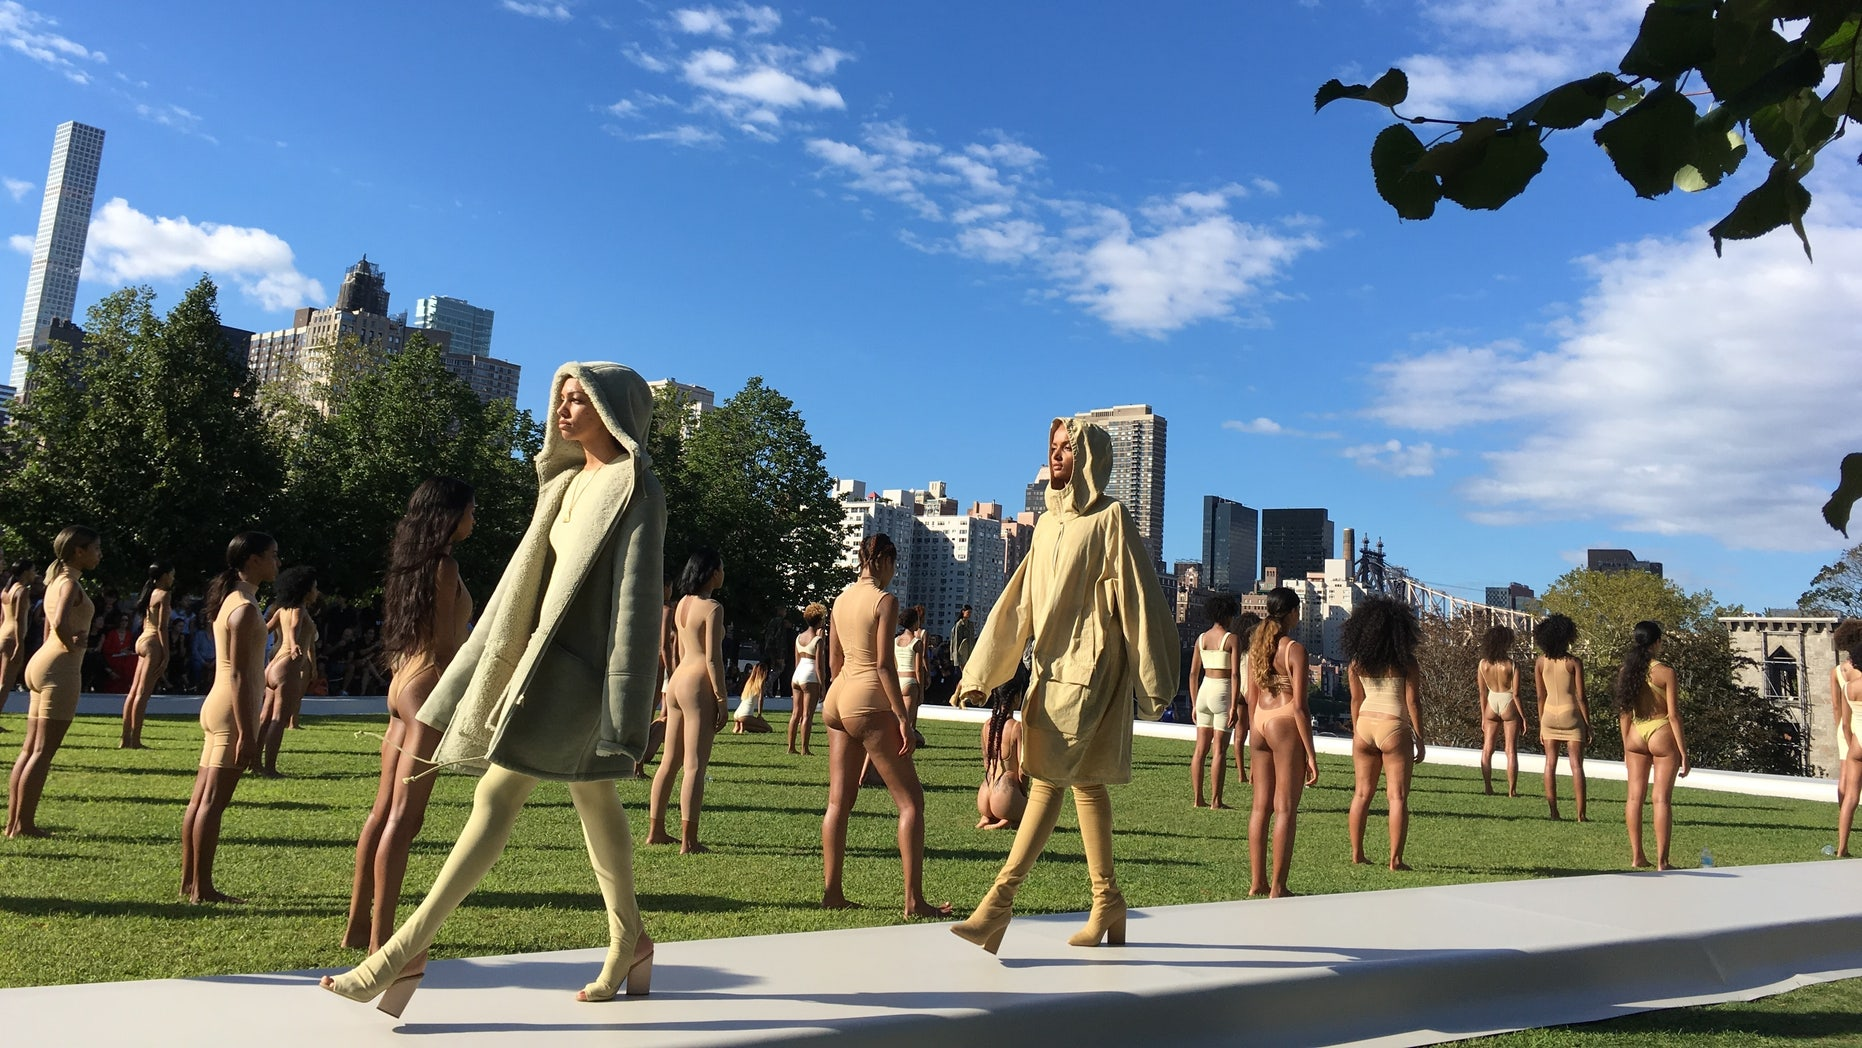 Models wear the Yeezy Season 4 collection by Kanye West during a fashion show, Wednesday, Sept. 7, 2016, at the Franklin D. Roosevelt Four Freedoms Park on Roosevelt Island in New York.